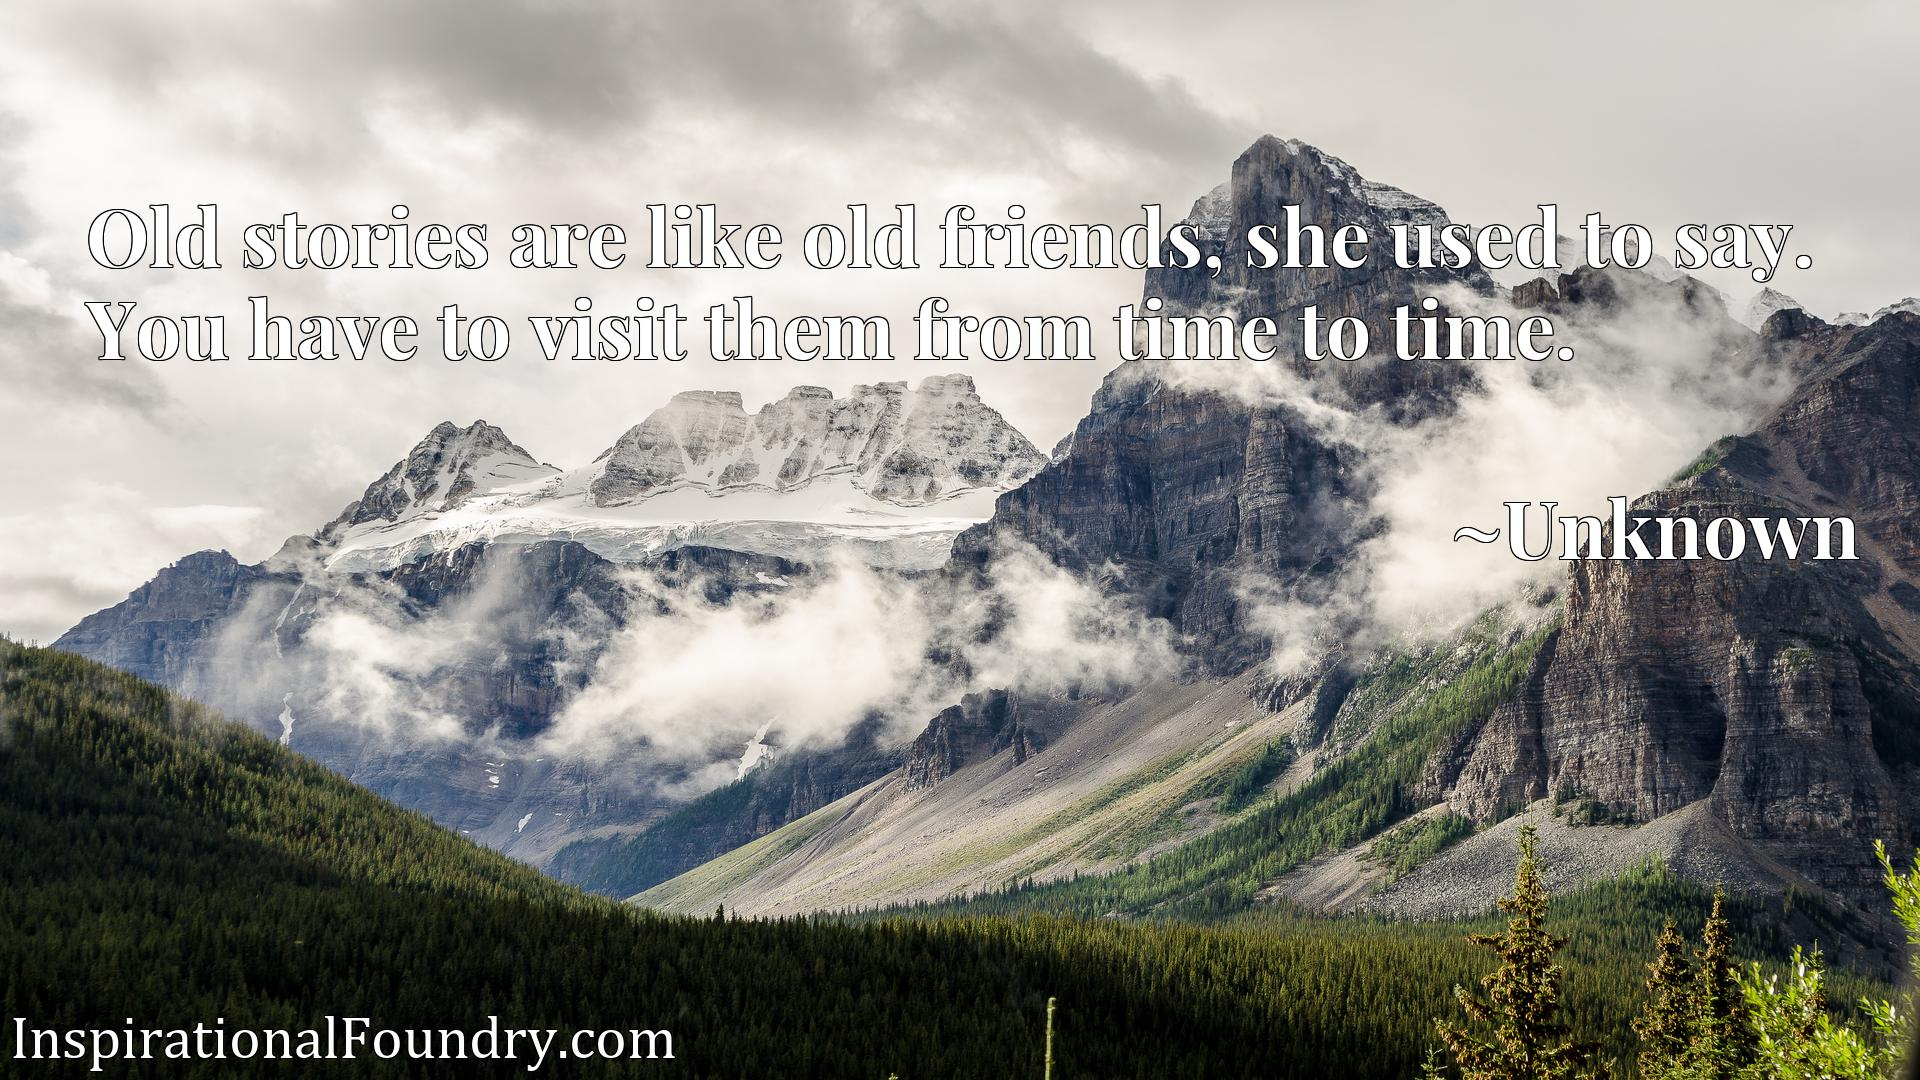 Old stories are like old friends, she used to say. You have to visit them from time to time.